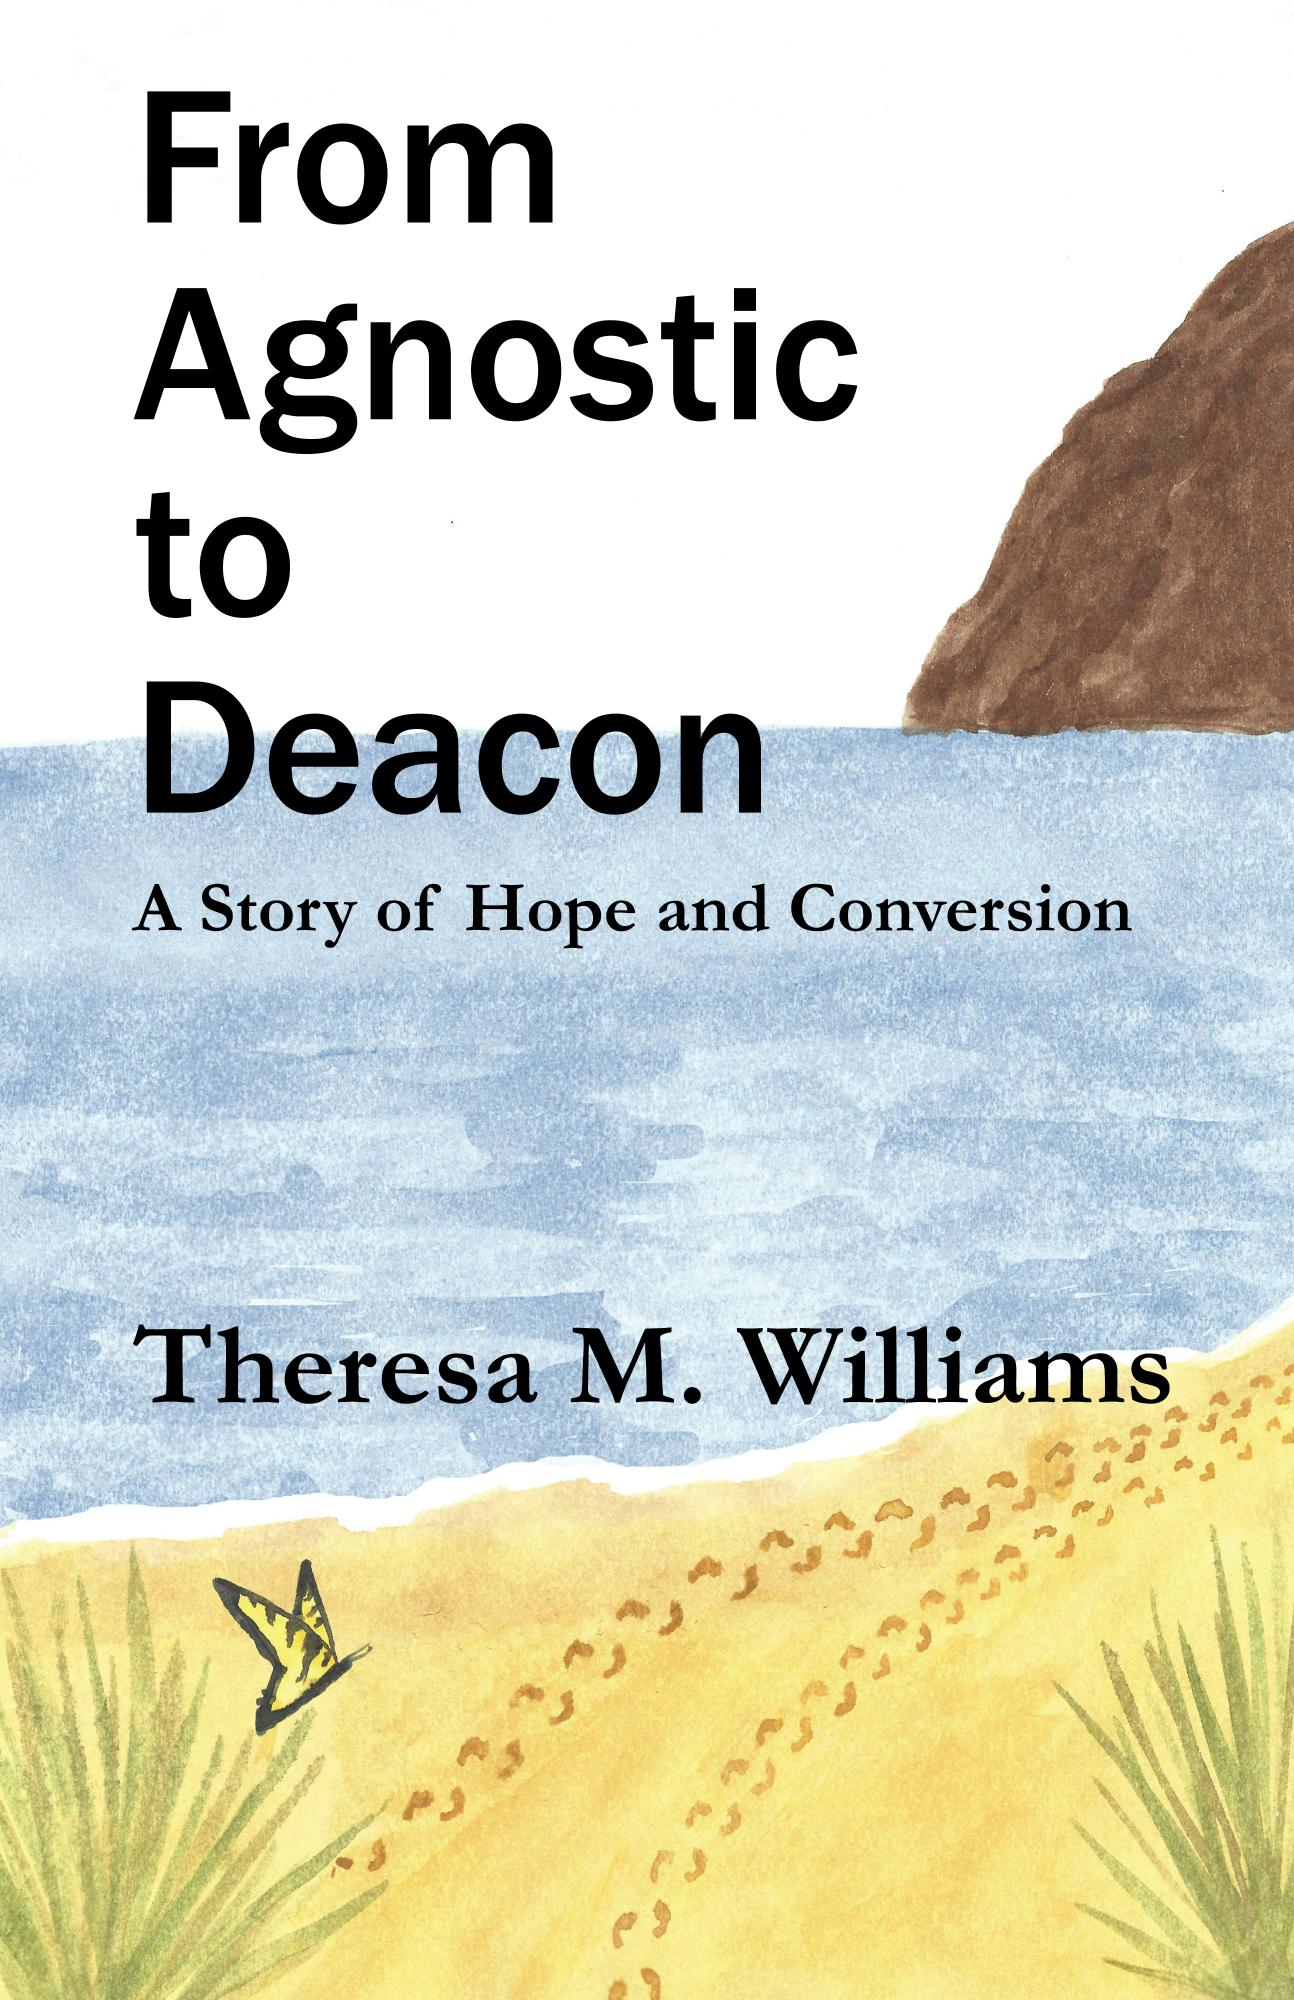 From Agnostic to Deacon (book)